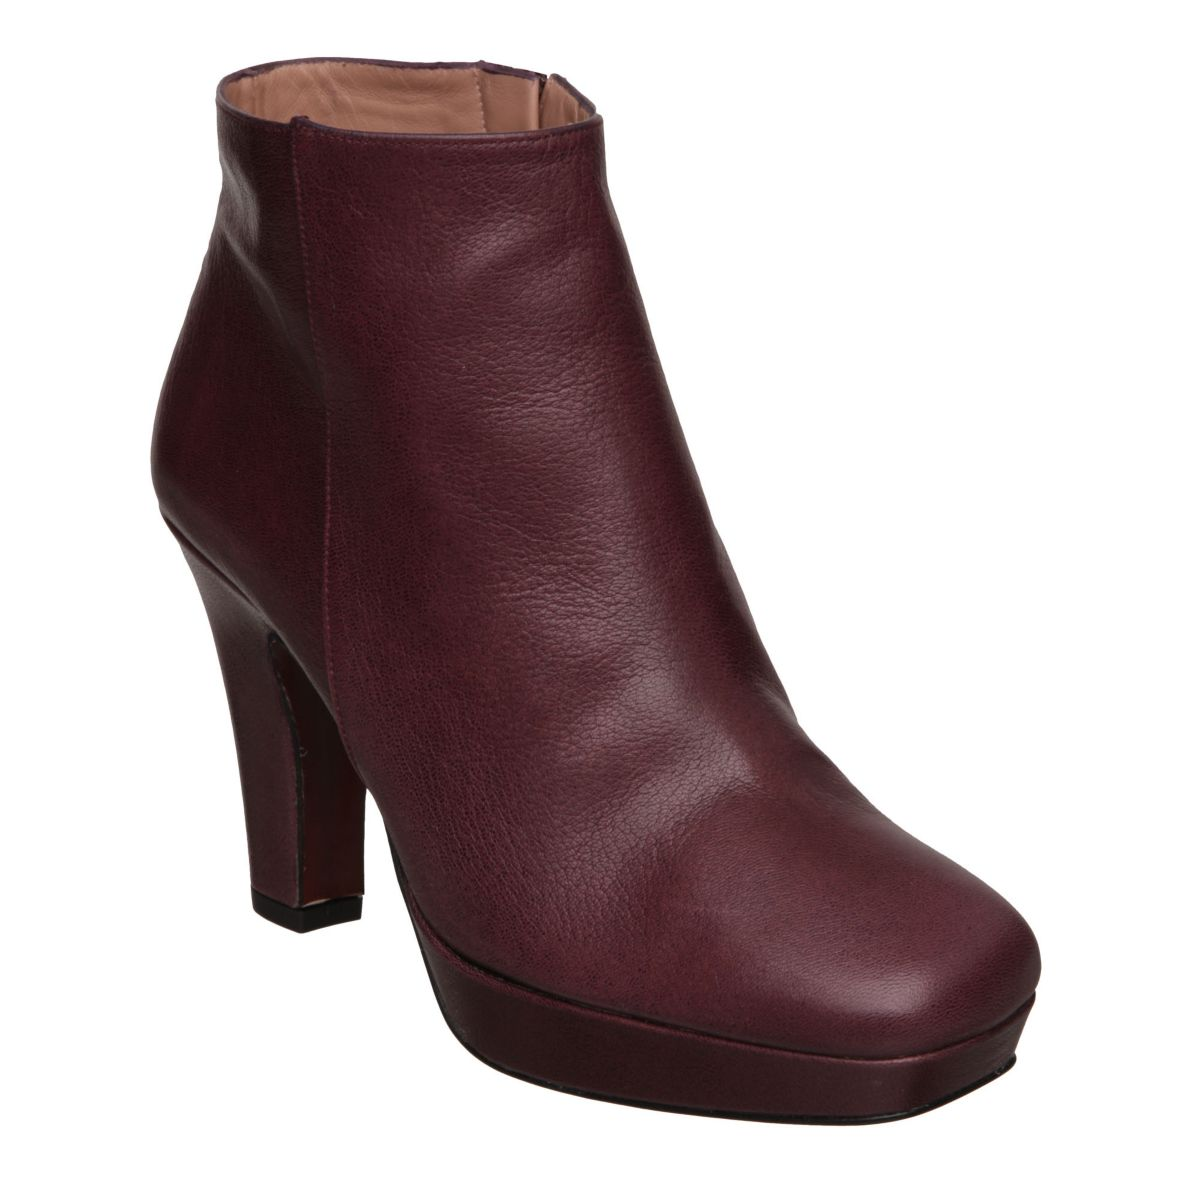 PIED-A-TERRE-SNYDERS-PURPLE-LEATHER-LADIES-HIGH-HEEL-WOMENS-ANKLE-BOOTS-SIZE-3-8